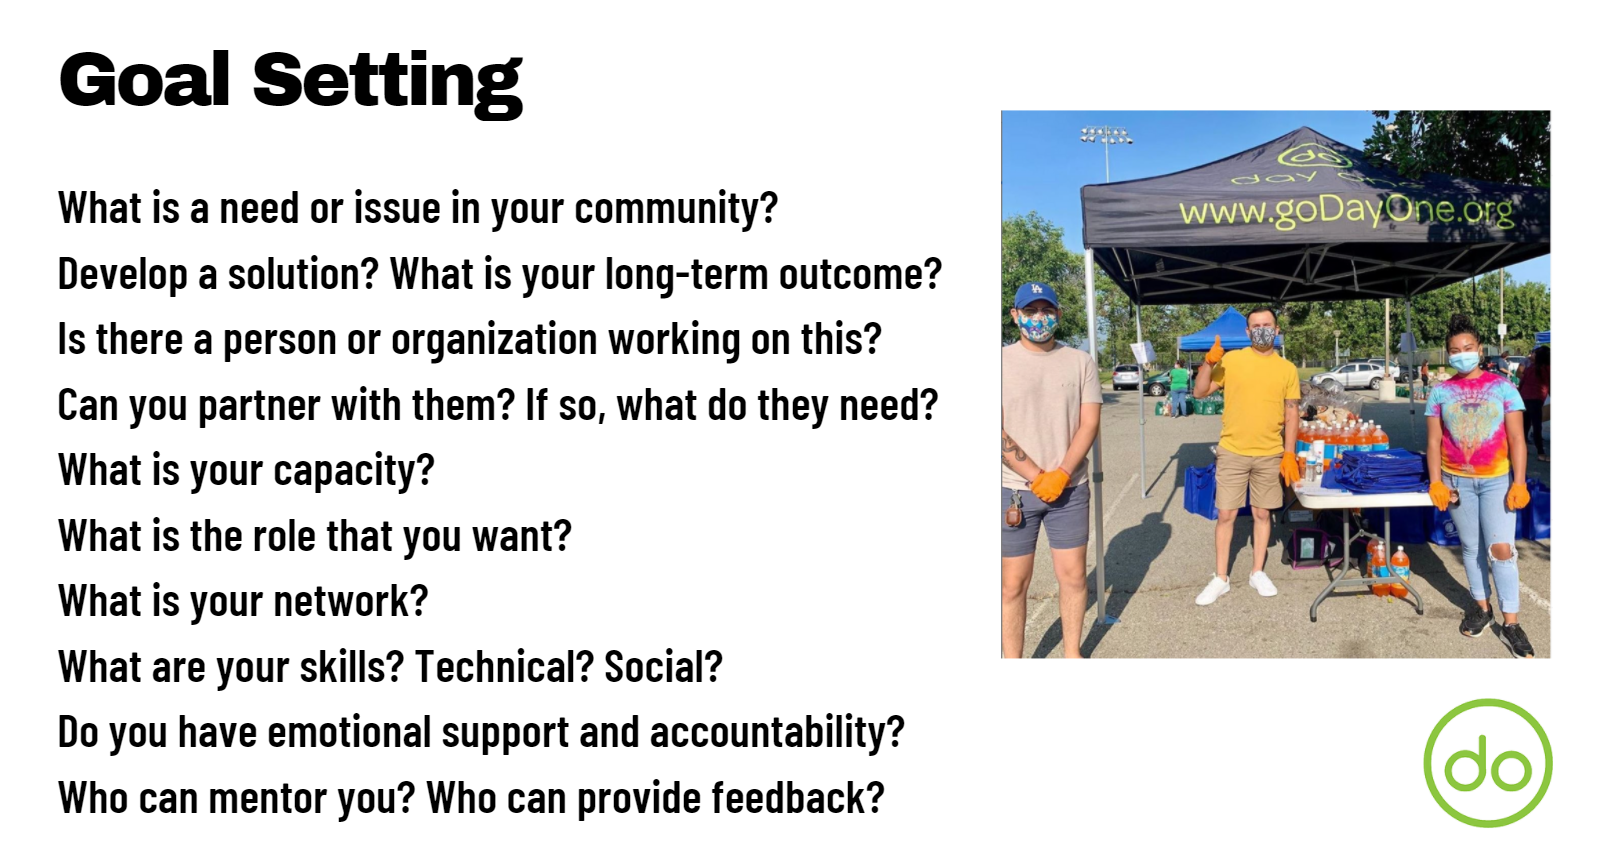 Day One Goal Setting for Community Advocacy Guidelines. 1)What is a need or issue in your community? 2)Develop a solution? What is your long-term outcome? Is there a person or organzation working on this? 4) Can you partner with them? If so, what do they need? 5)What is your capacity? 6) What is the role you want? 7)What is your network? 8)What are your skills? Technical? Social? 9) Do you have emotional support and accountability? 10) Who can mentor you? Who can provide feedback?